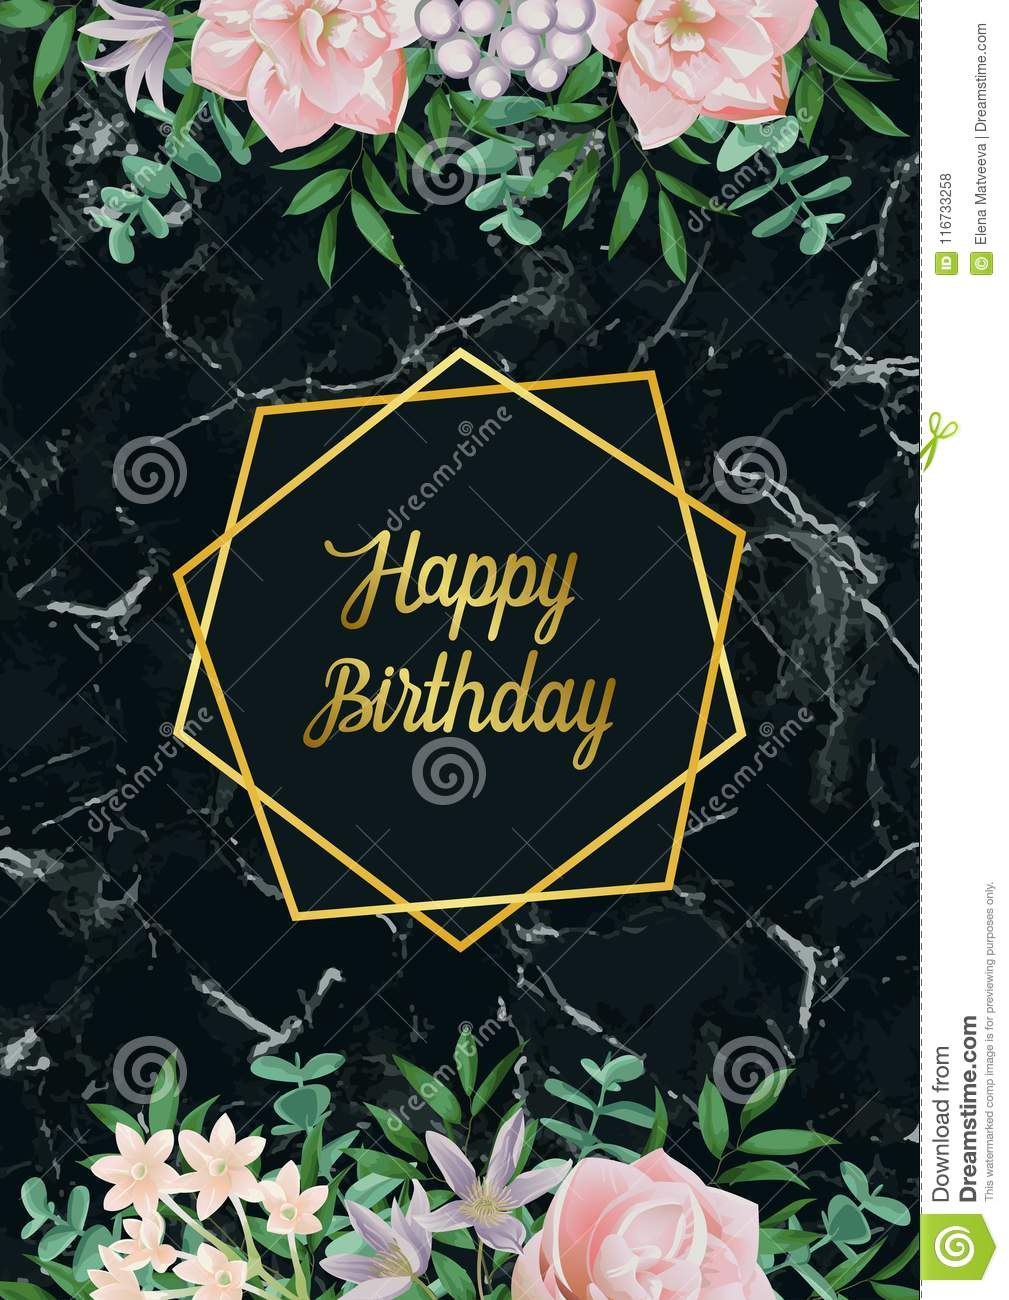 Luxury Card With Gold Frame Pink Flowers Greenery Spring Happy Birthday Composition On Black Marble Backdrop Floral Template Wiht Text Place For Holiday